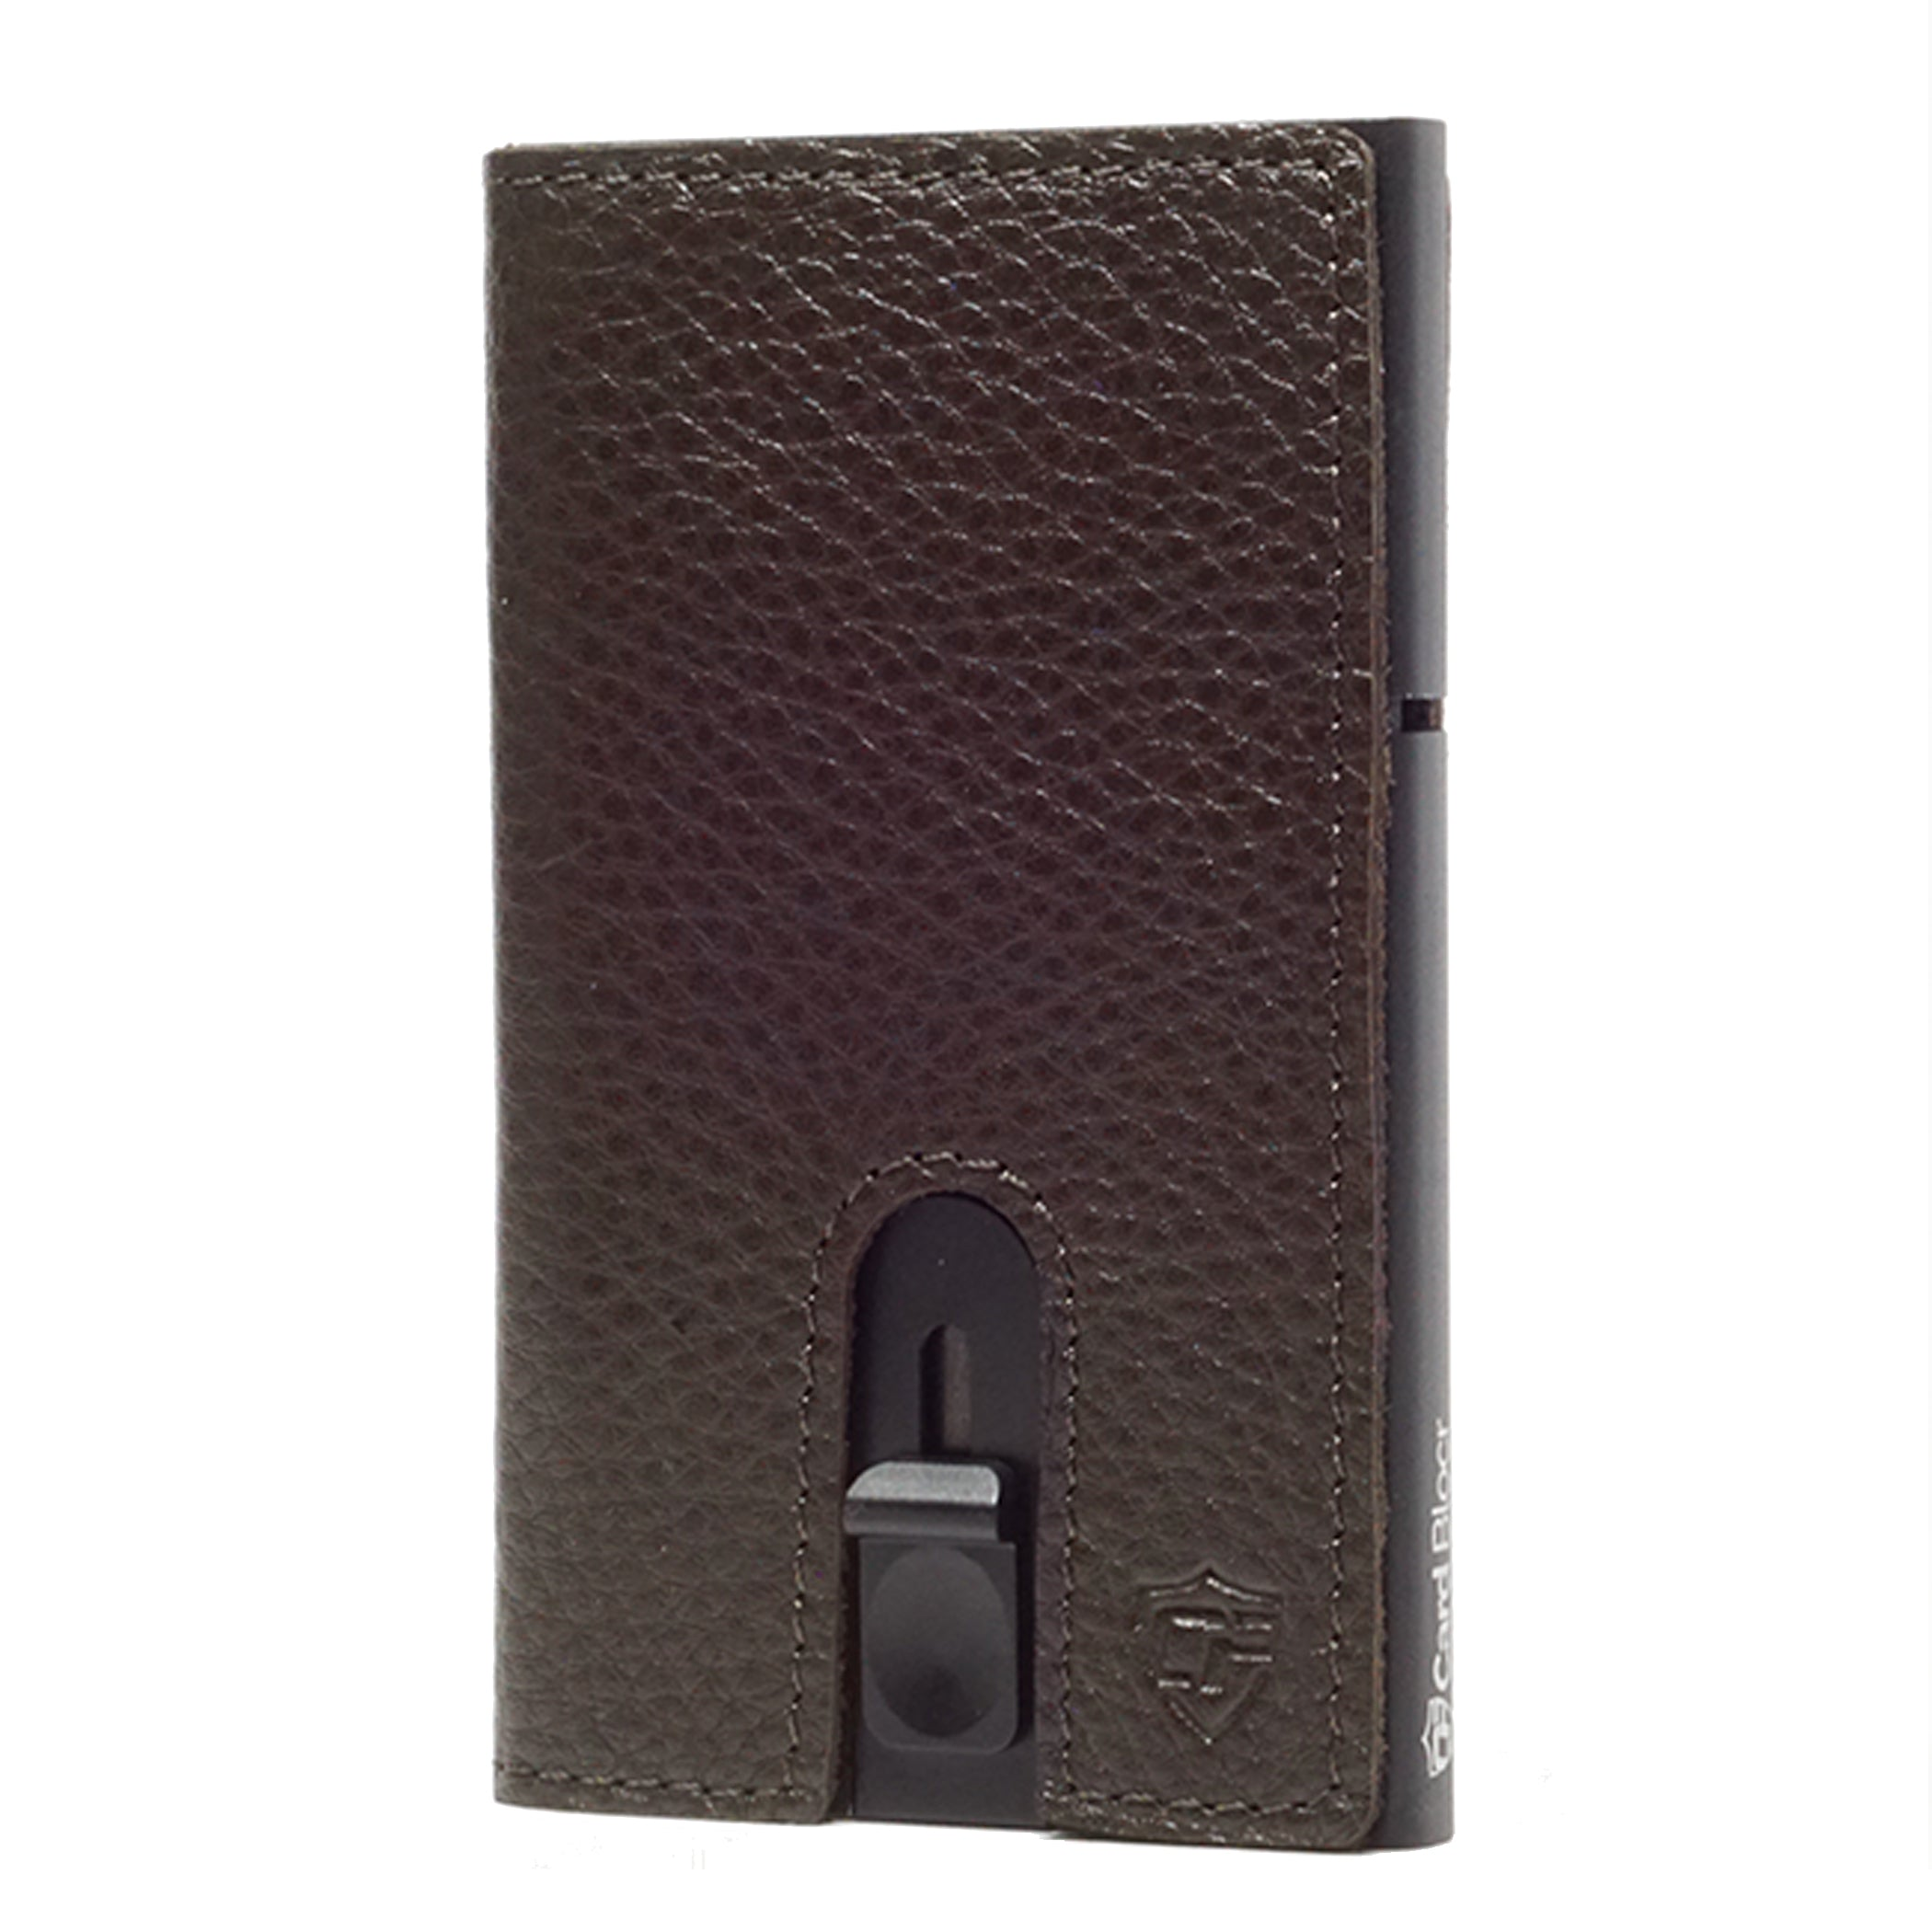 Card Blocr Credit Card Holder in Black Wrapped in Dark Chocolate Brown Leather | RFID Wallet No Cards